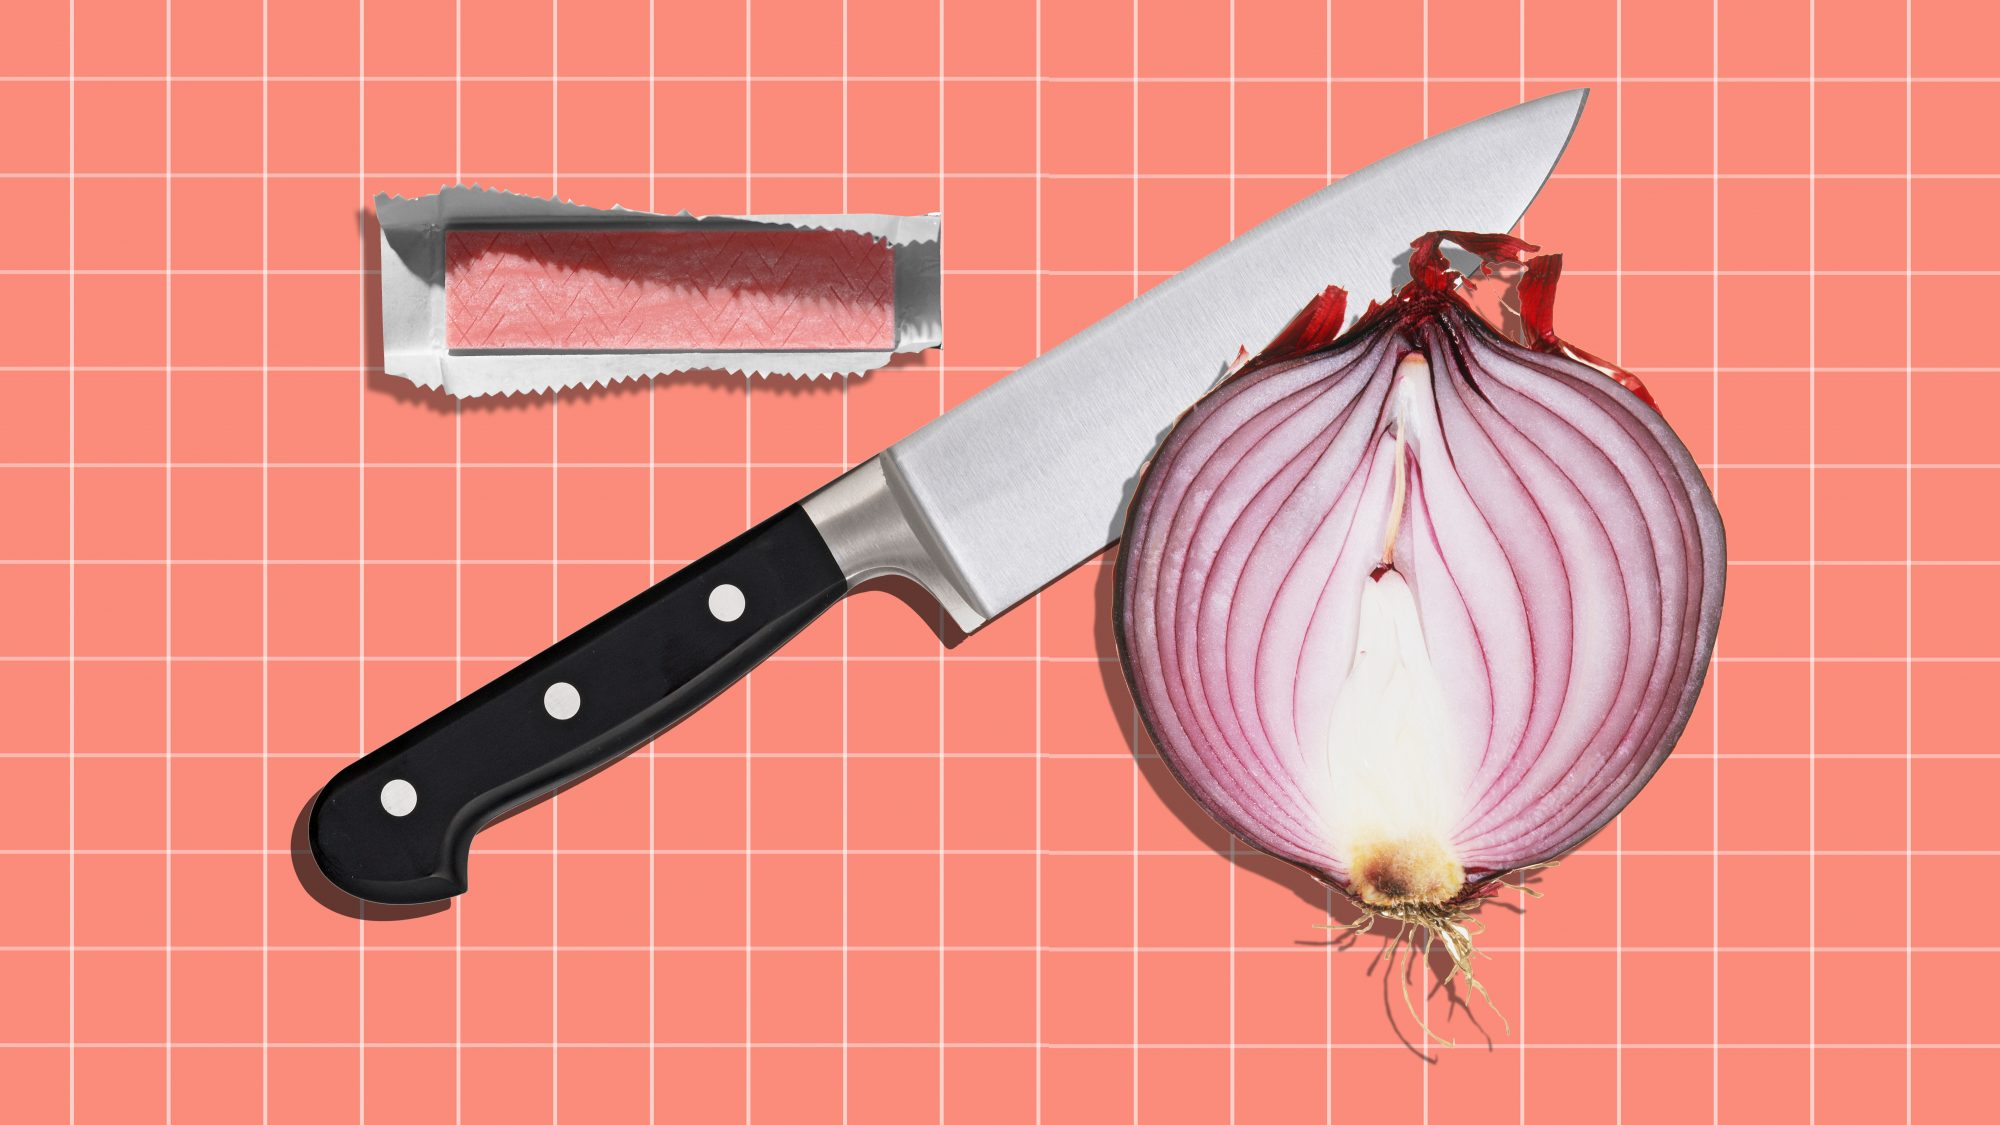 cut-onions-without-crying-gum